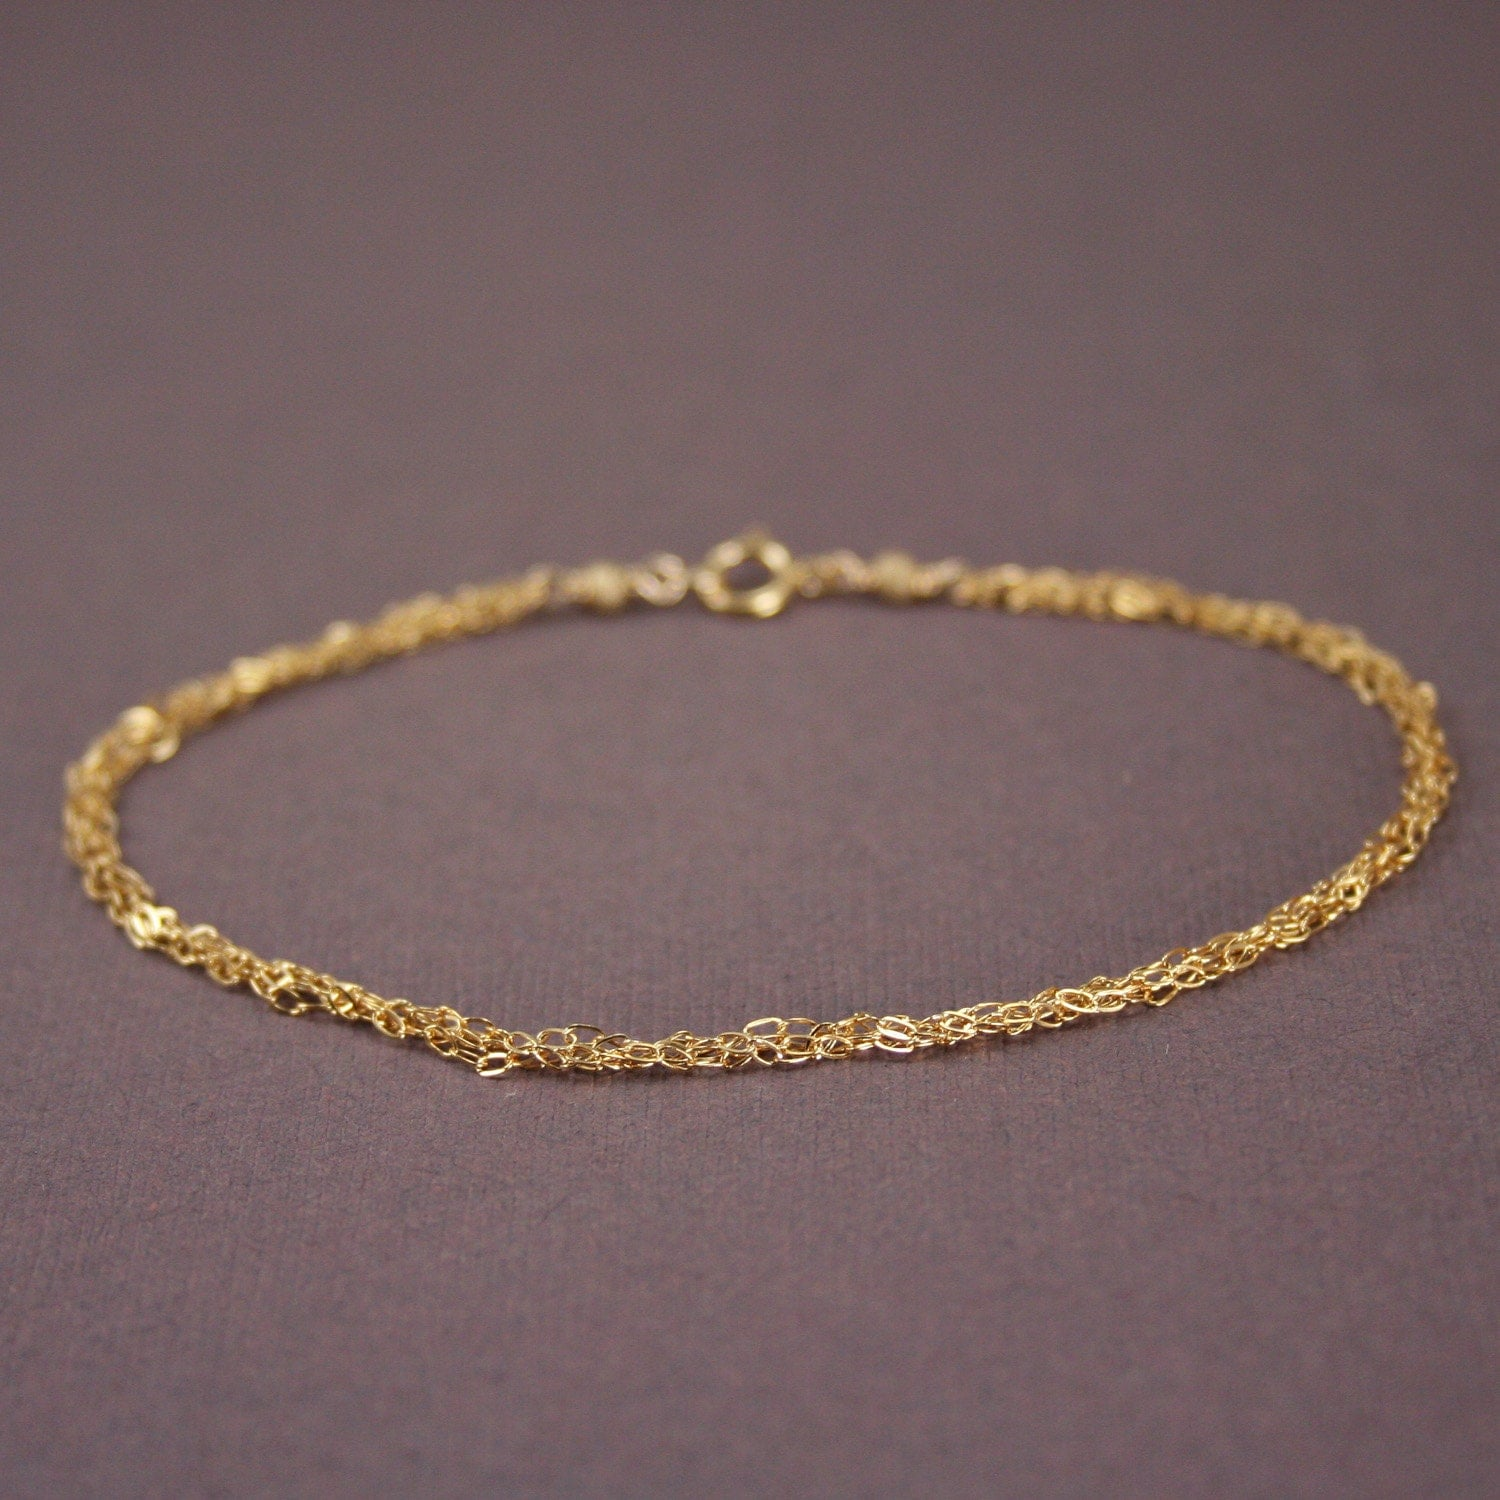 items similar to gold chain bracelet braided chain